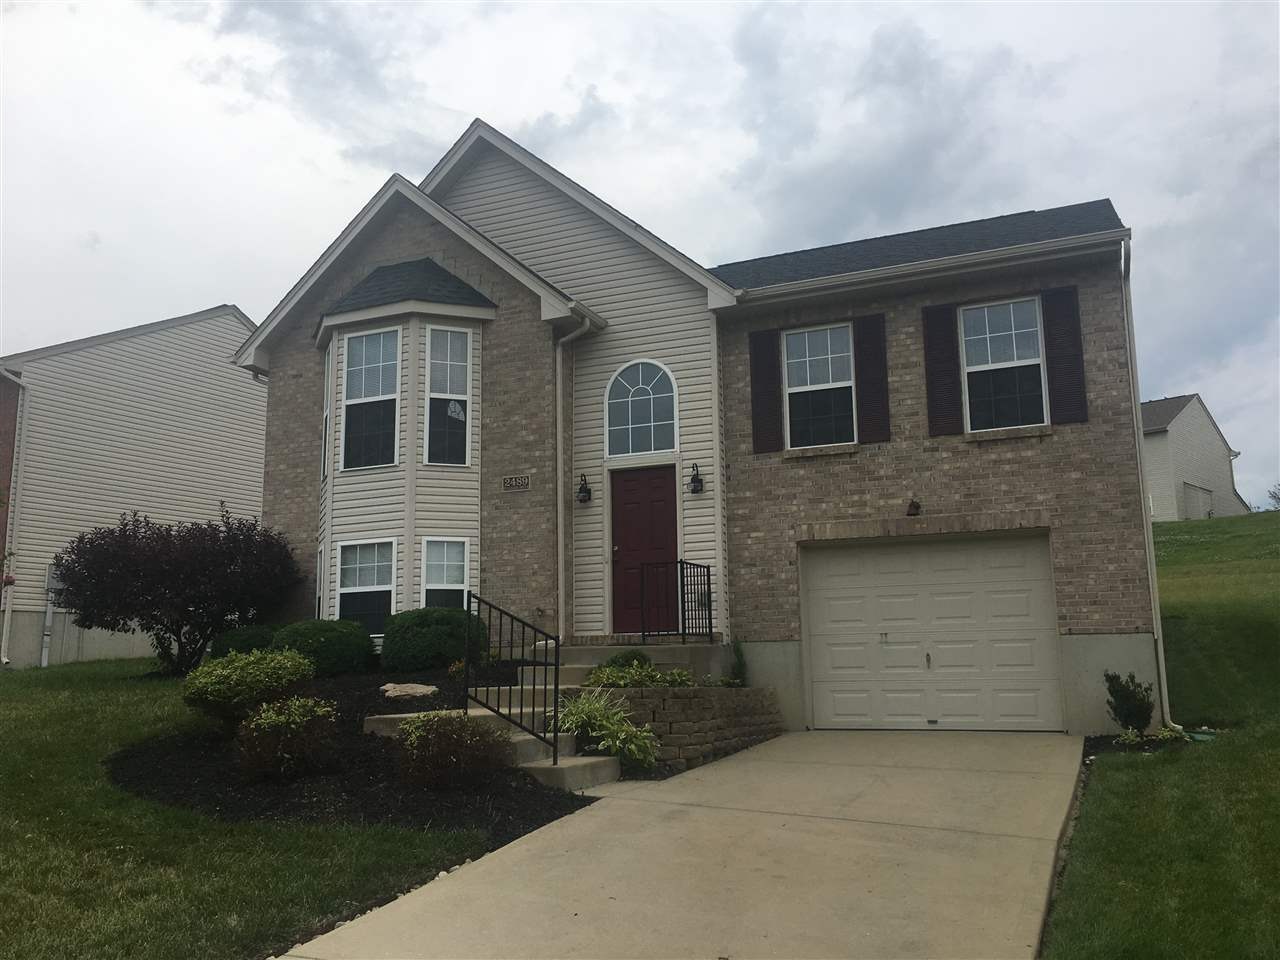 Photo 1 for 2489 Hilliard Dr Hebron, KY 41048